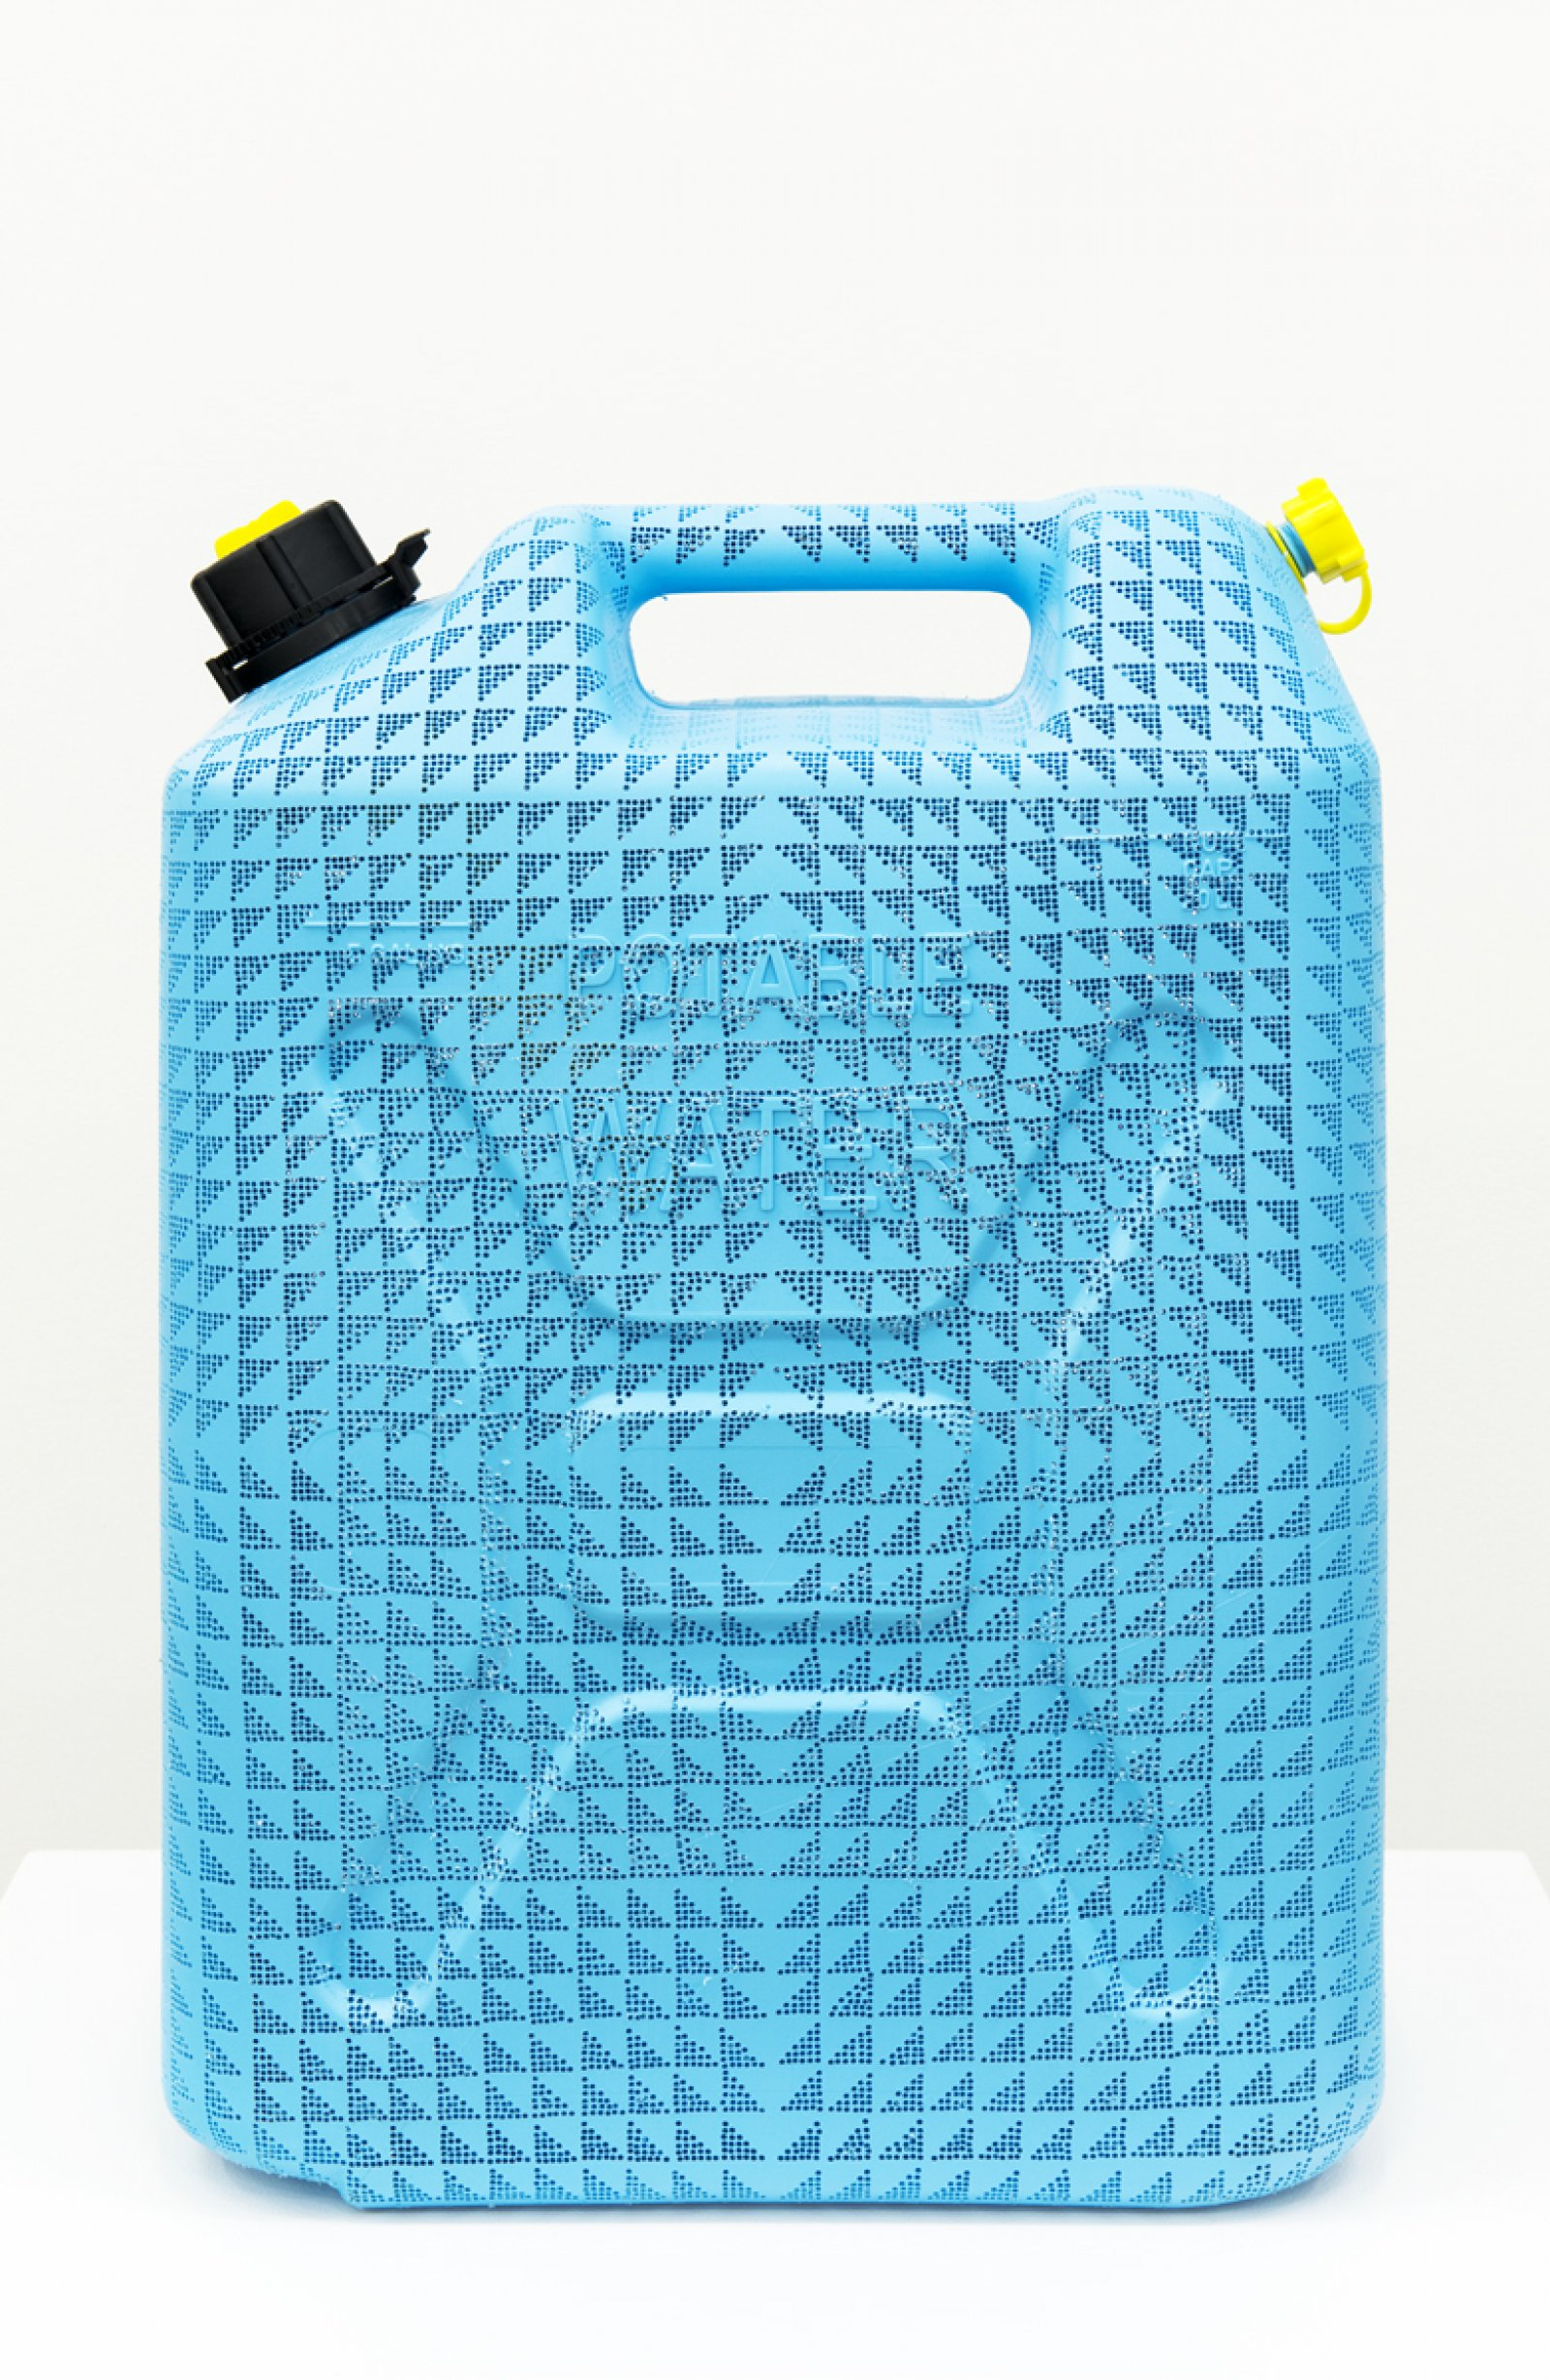 Brian Jungen,Triangle Repeater, 2013, carved gallon water jug,18 x 13 x 7 in. (46 x 33 x 18 cm)